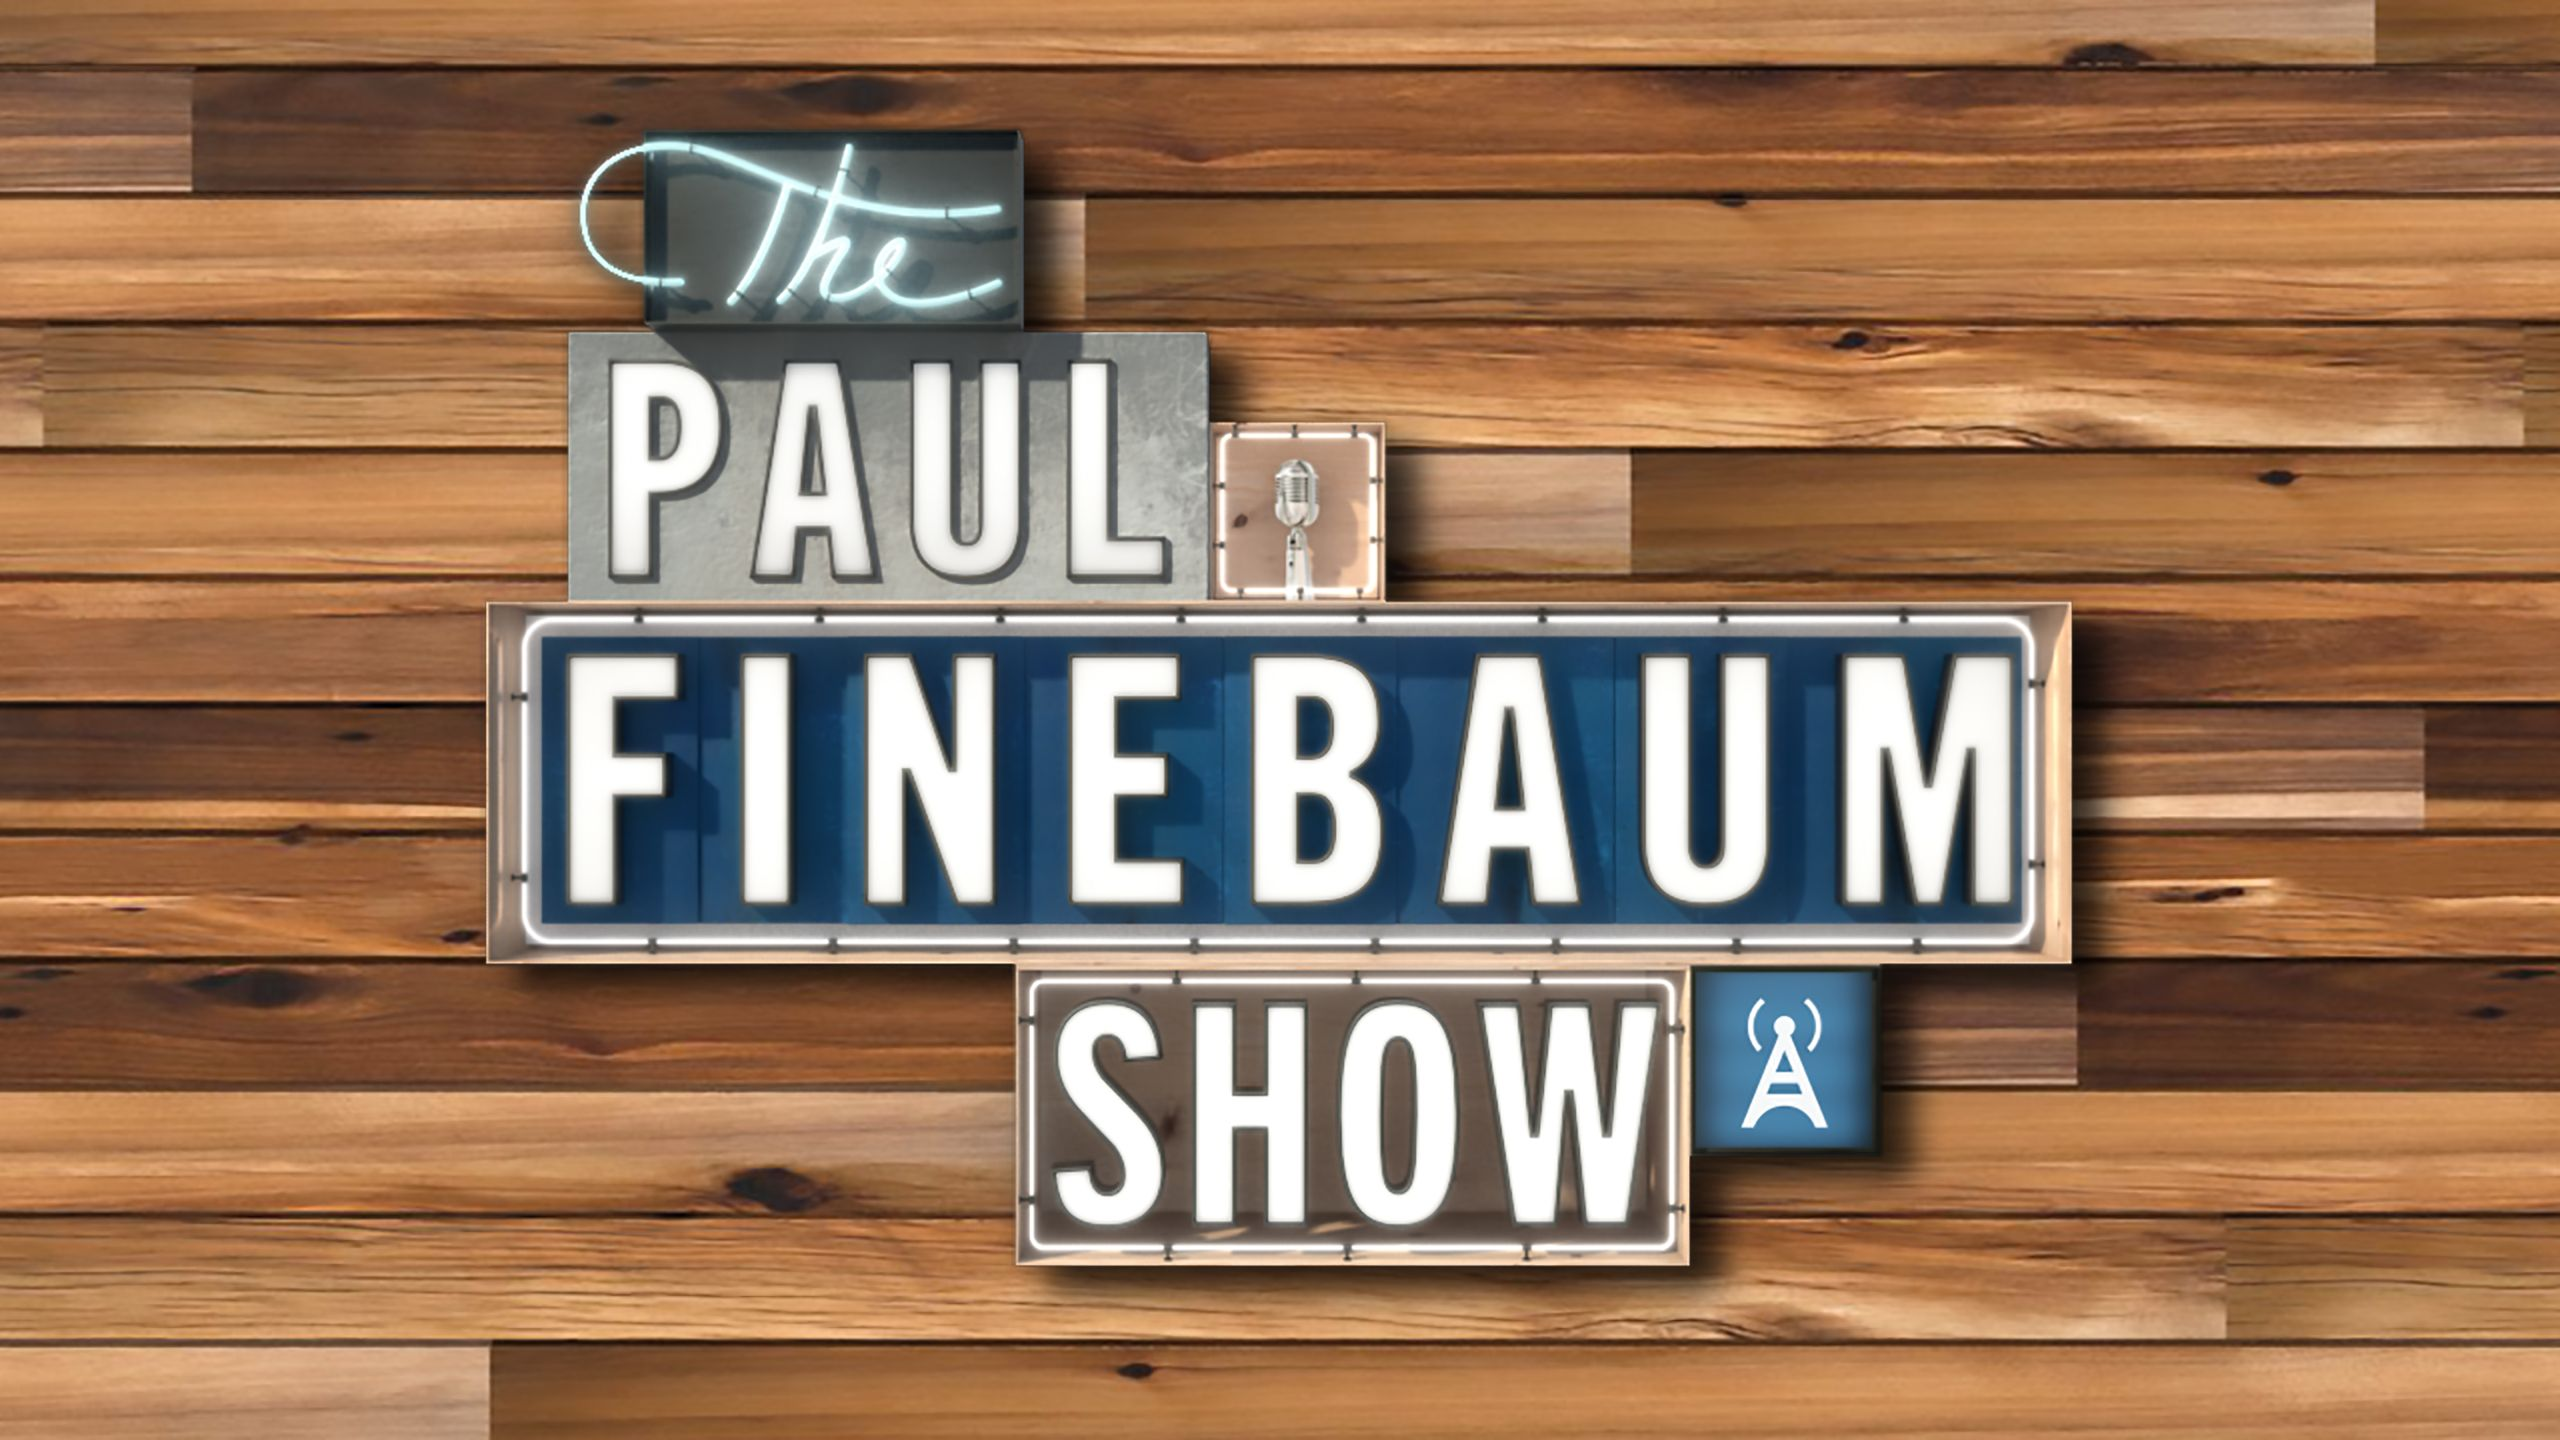 Fri, 1/19 - The Paul Finebaum Show